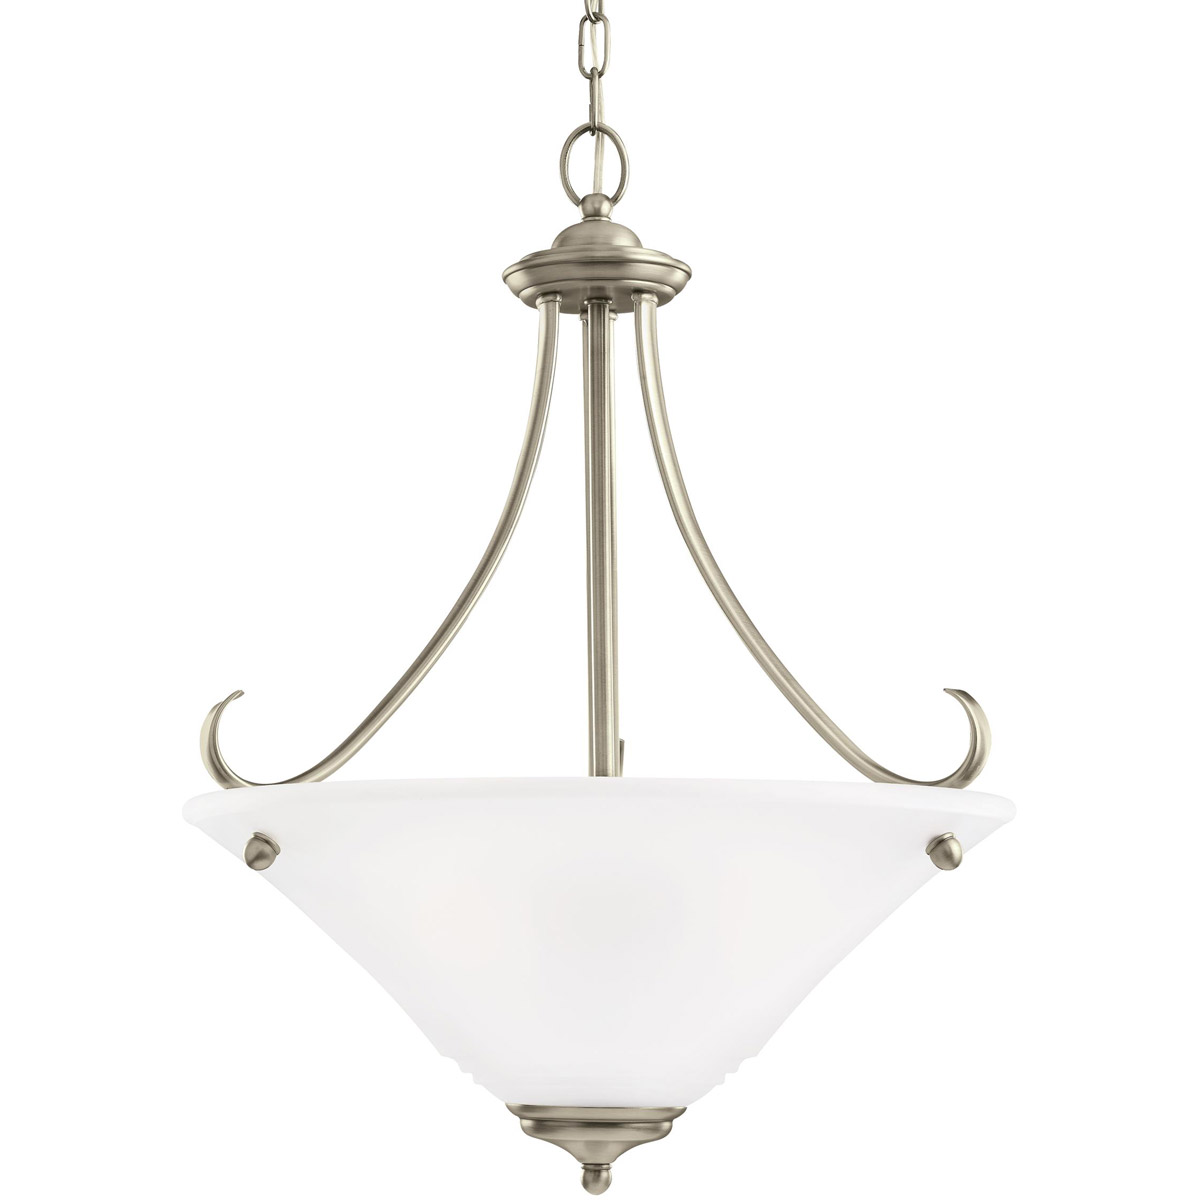 Sea Gull Lighting Parkview 3 Light Pendant in Antique Brushed Nickel 65381-965